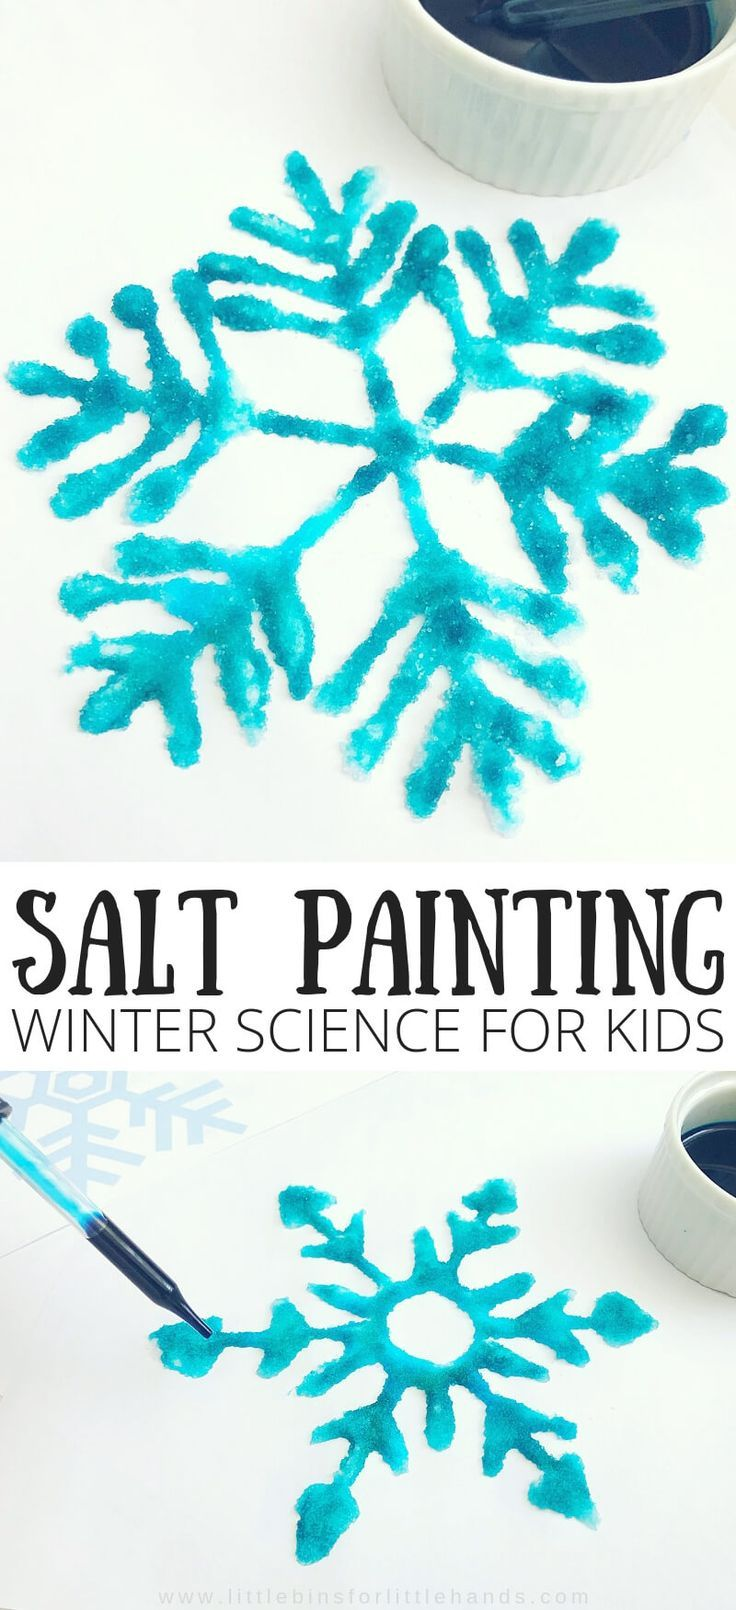 Snowflake Salt Painting Winter Science Science Can Take Many Forms And This Is A Fun Winter Winter Science Activities Winter Science Experiments Science Crafts